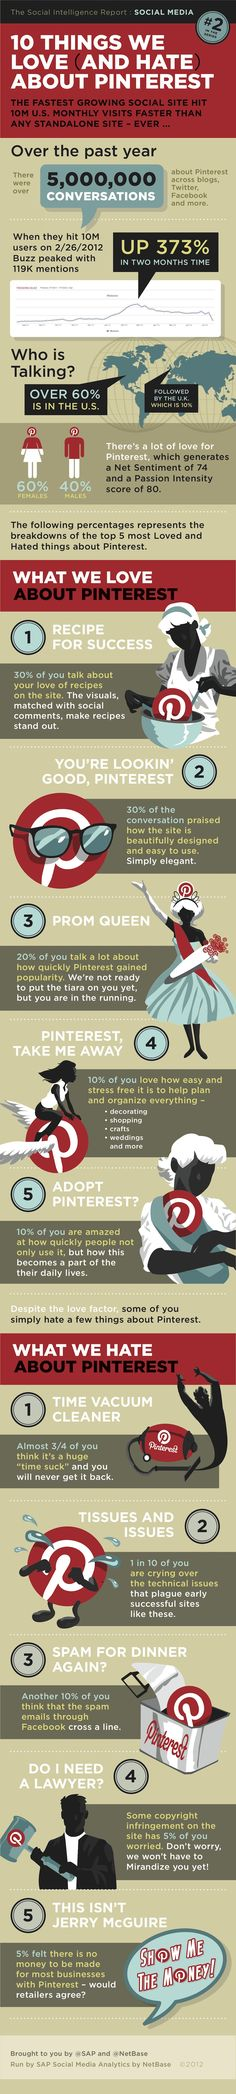 The Pinterest Love/Hate Relationship  #social, #media, #pinterest